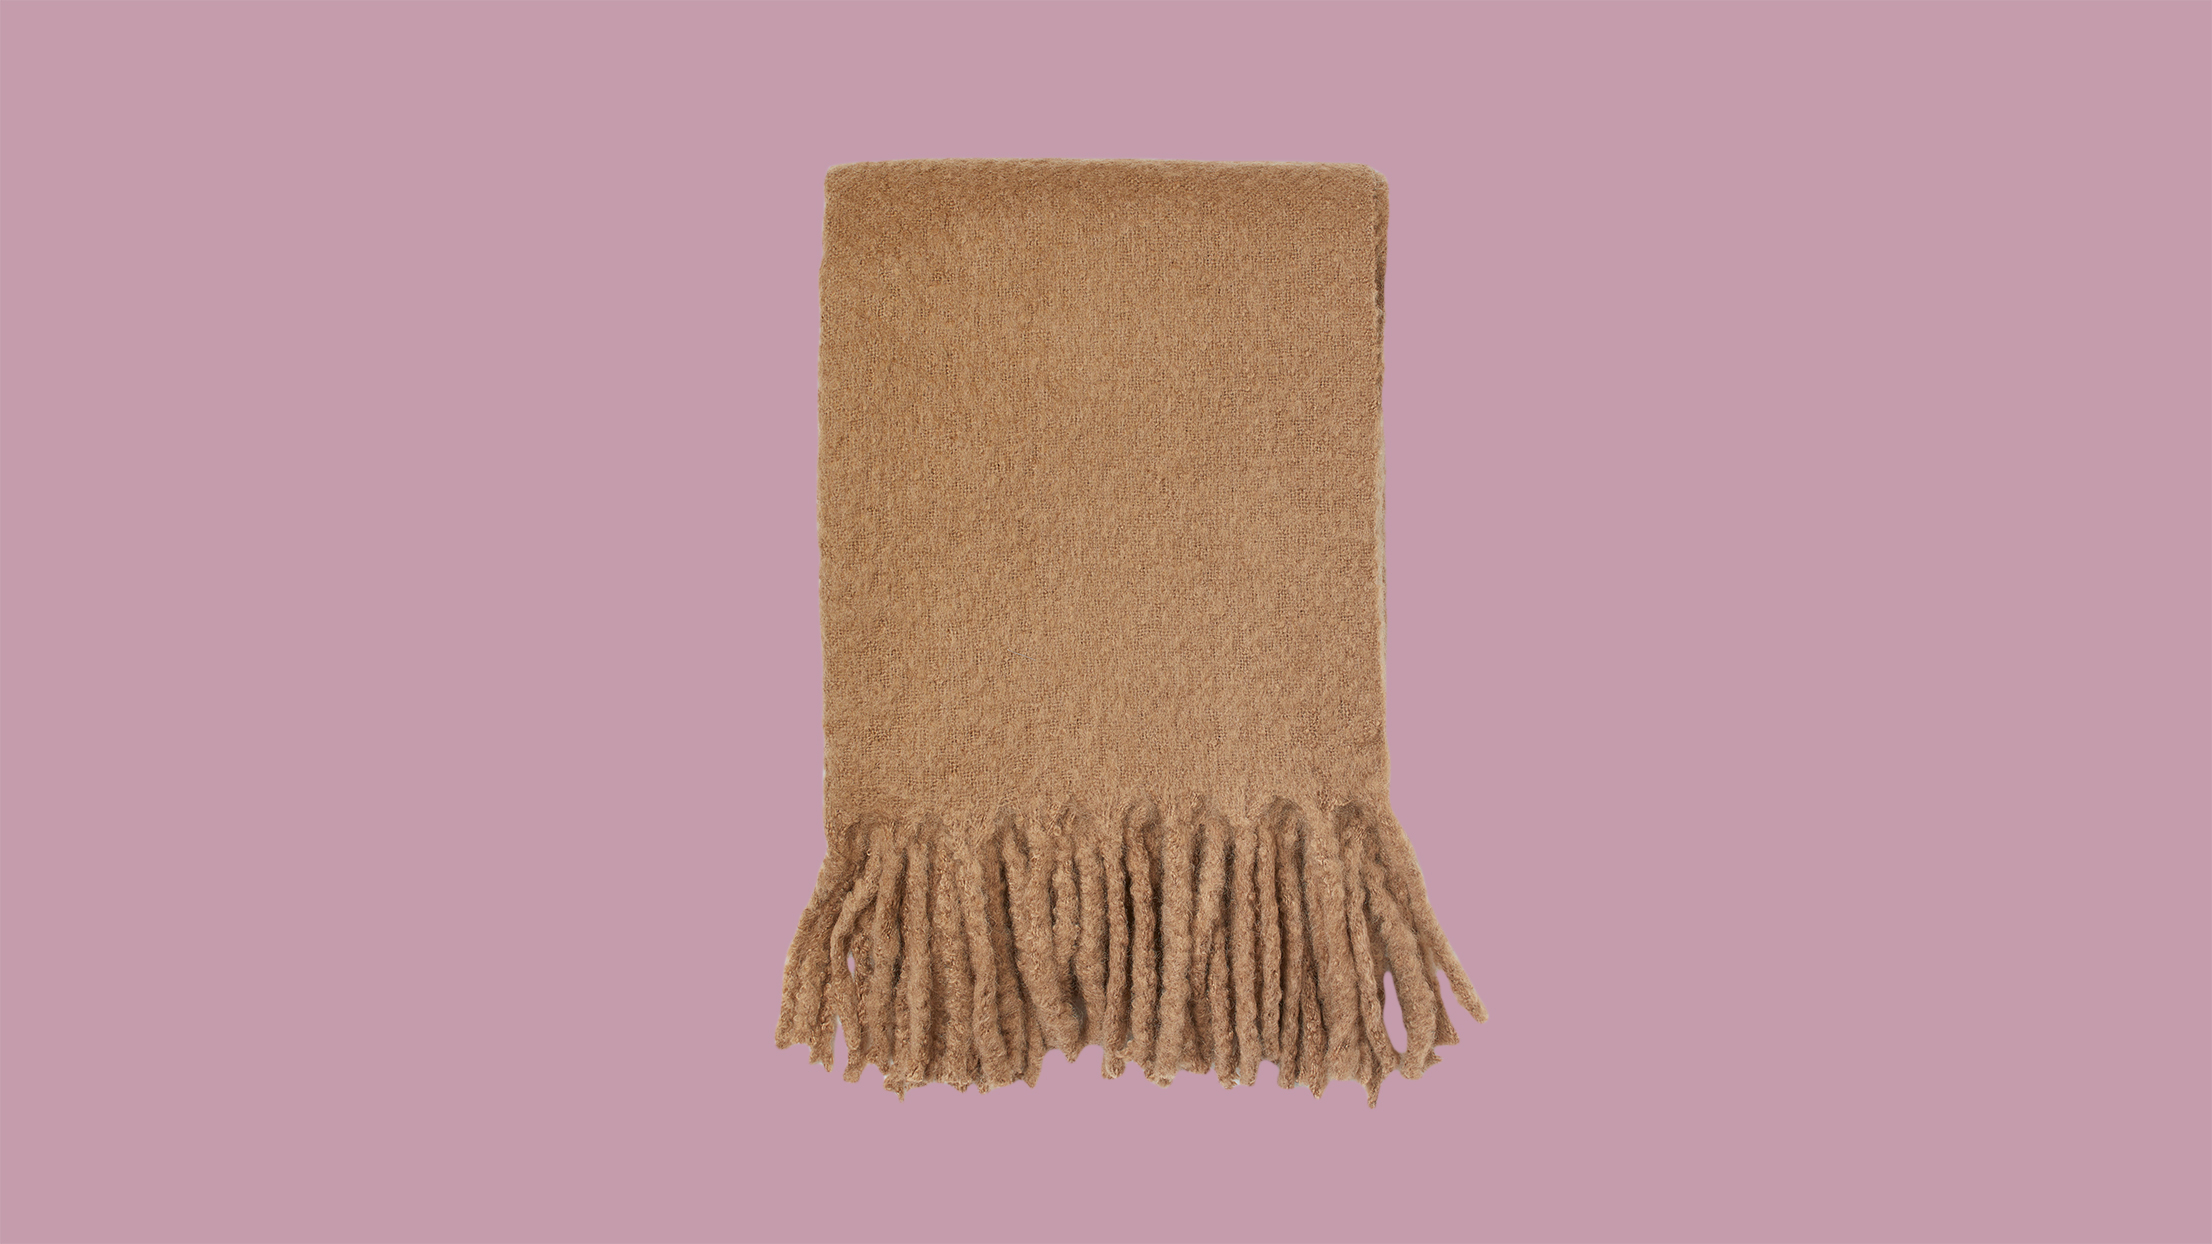 cozy brown throw blanket with tassels